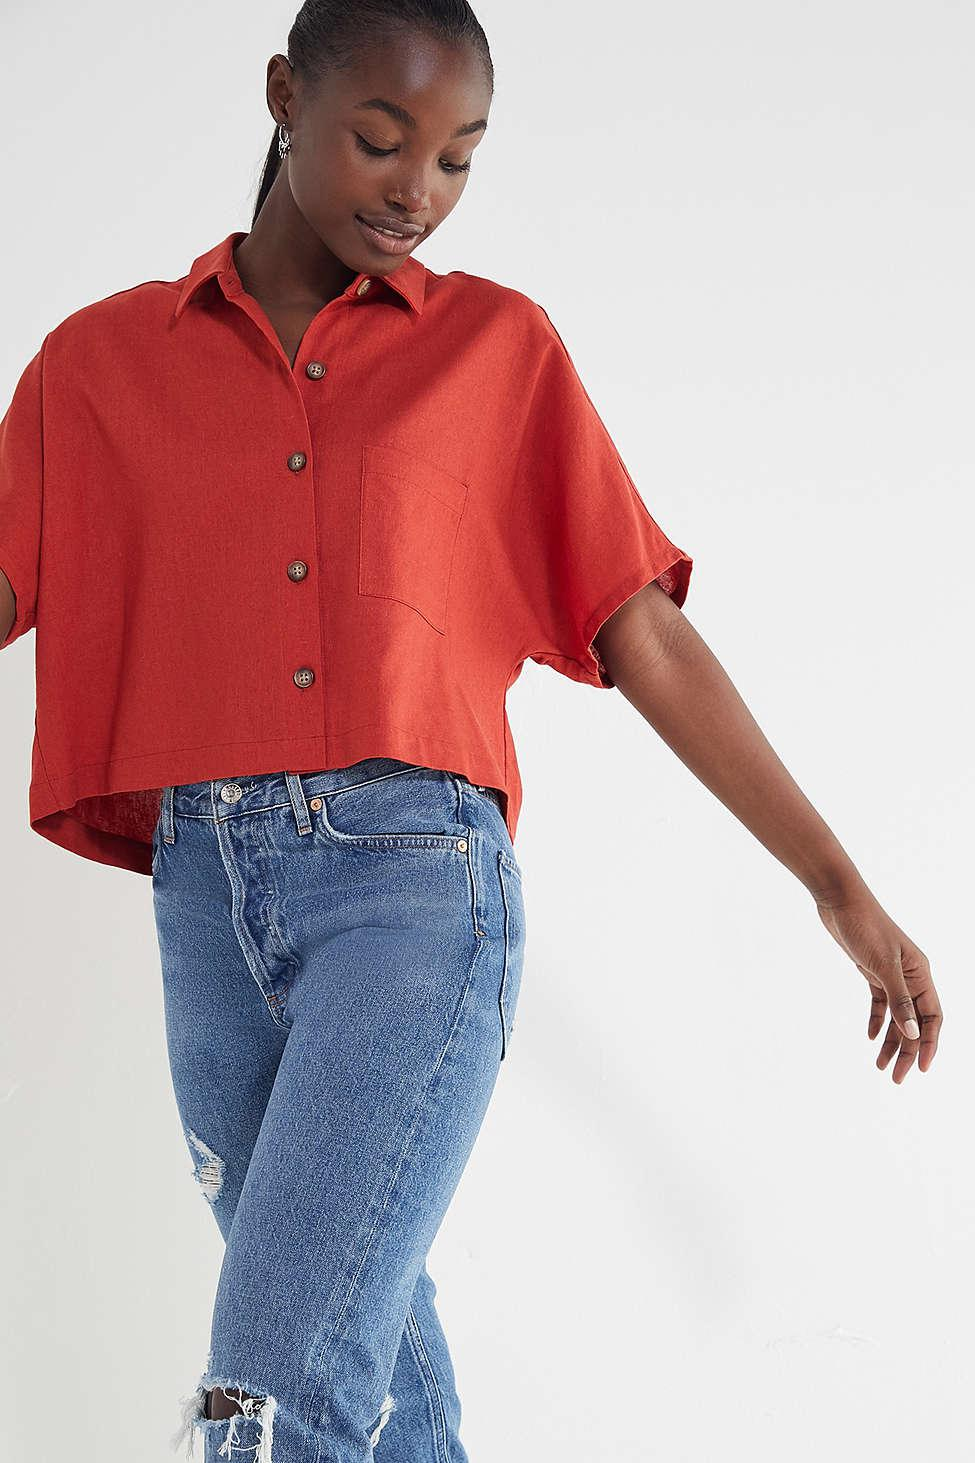 cecb3a58 Lyst - Urban Renewal Remnants Linen Button-down Shirt in Red